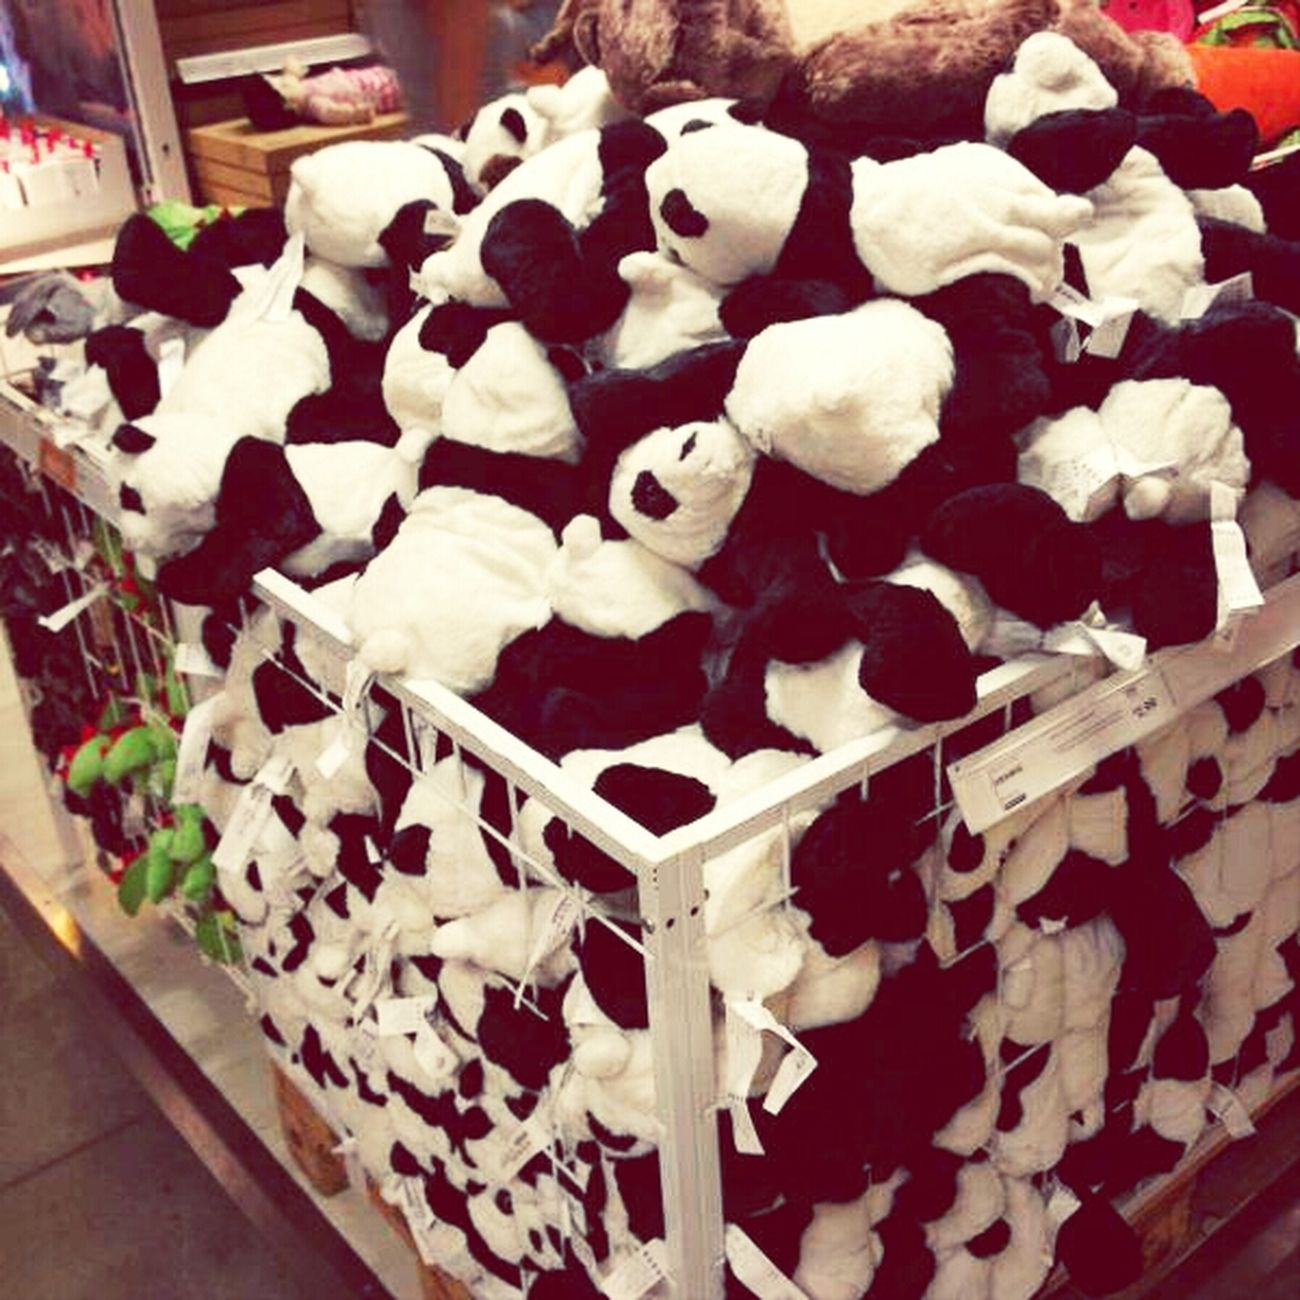 Panda everywhere